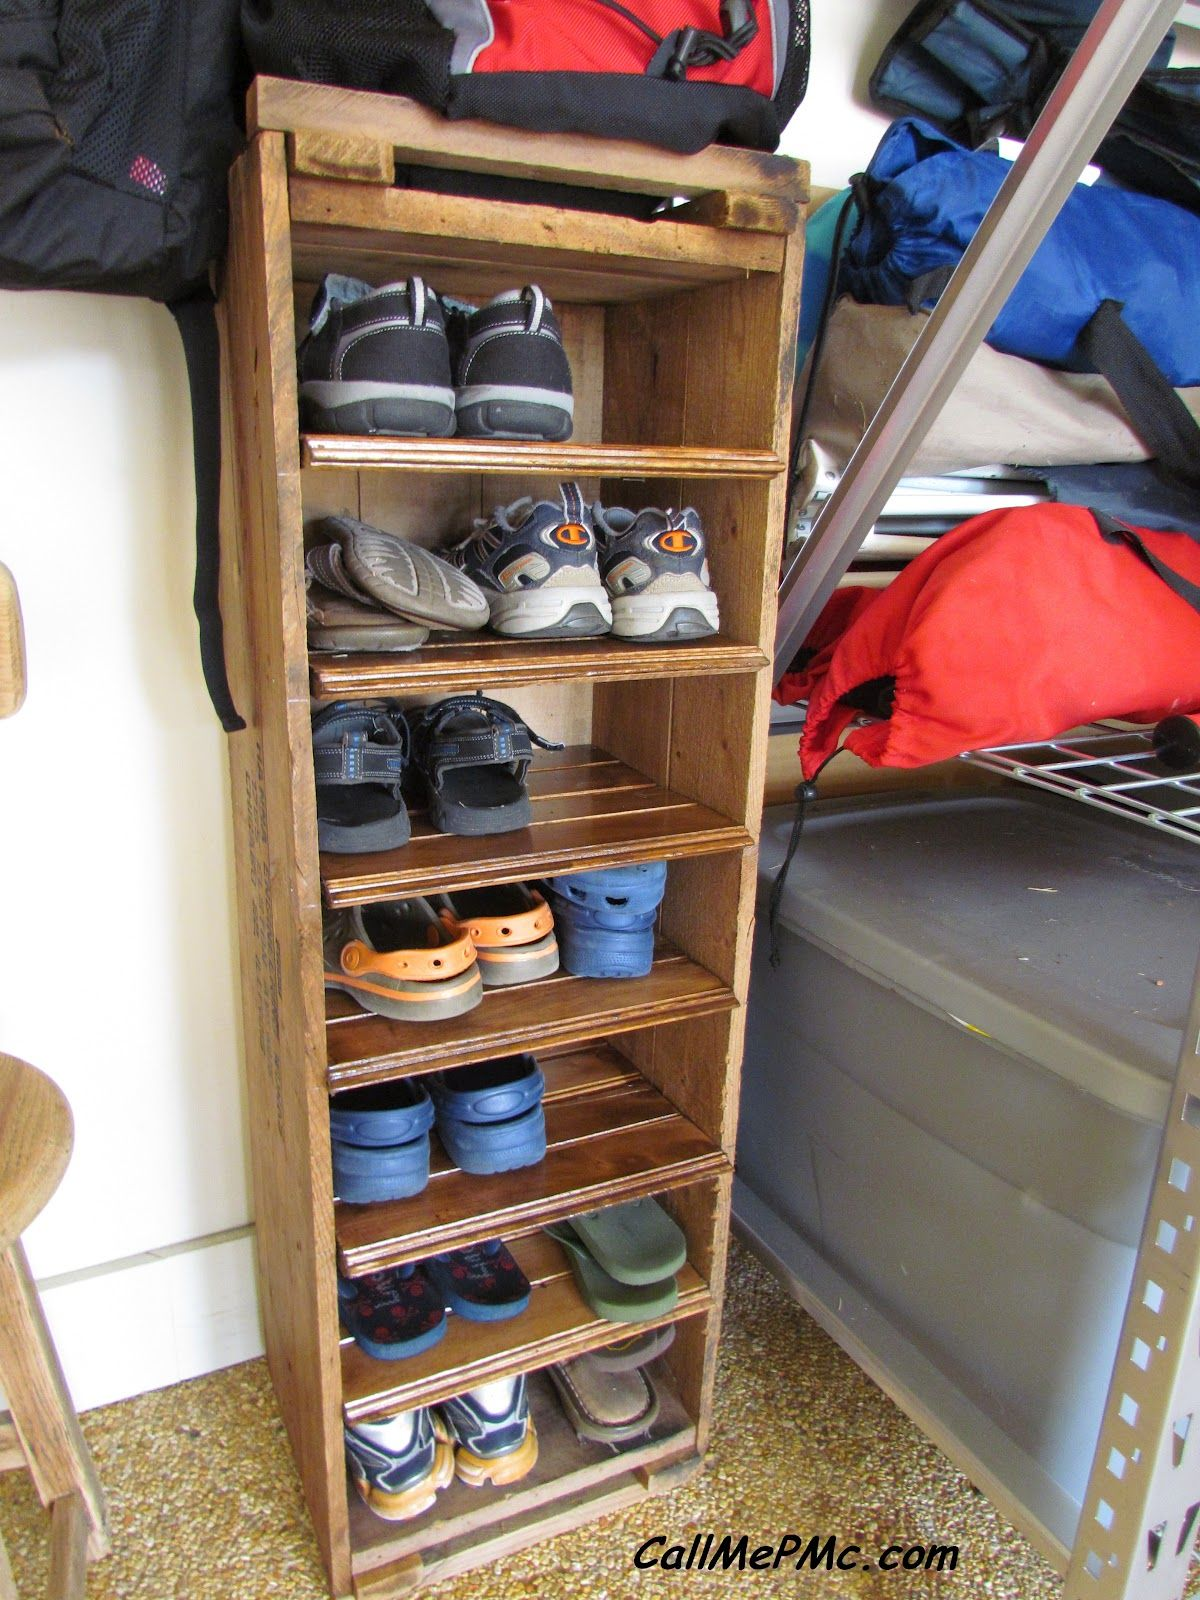 Diy Shoe Rack From Scrap Wood Call Me Pmc Diy Shoe Rack Shoe Rack Furniture Wood Shoe Rack